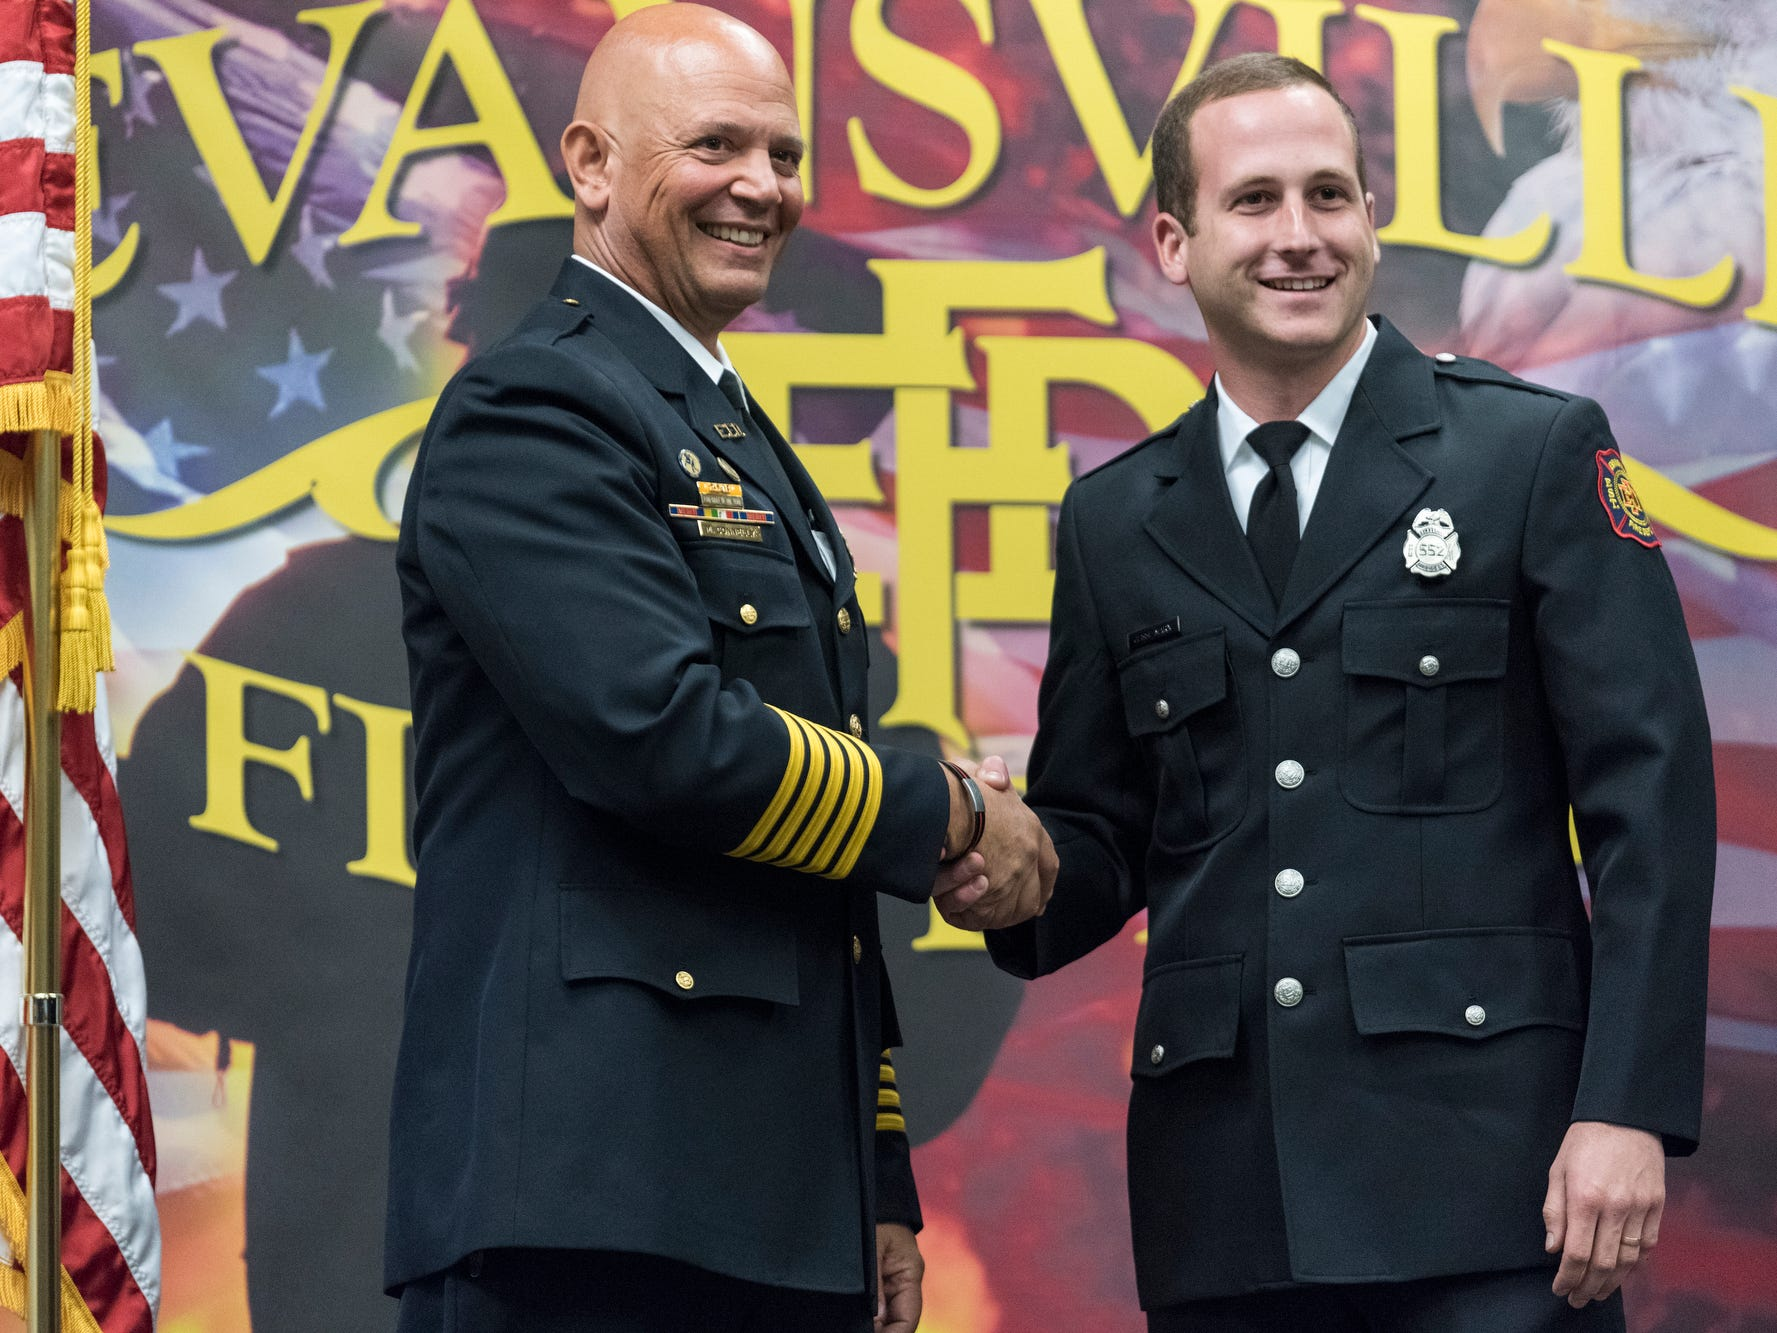 Evansville Fire Chief Charles Connolly, left, poses for a picture with new probationary firefighter Jesse Marx, right, during his graduation ceremony at the American Red Cross Headquarters in Evansville, Ind., Friday, Oct. 12, 2018.